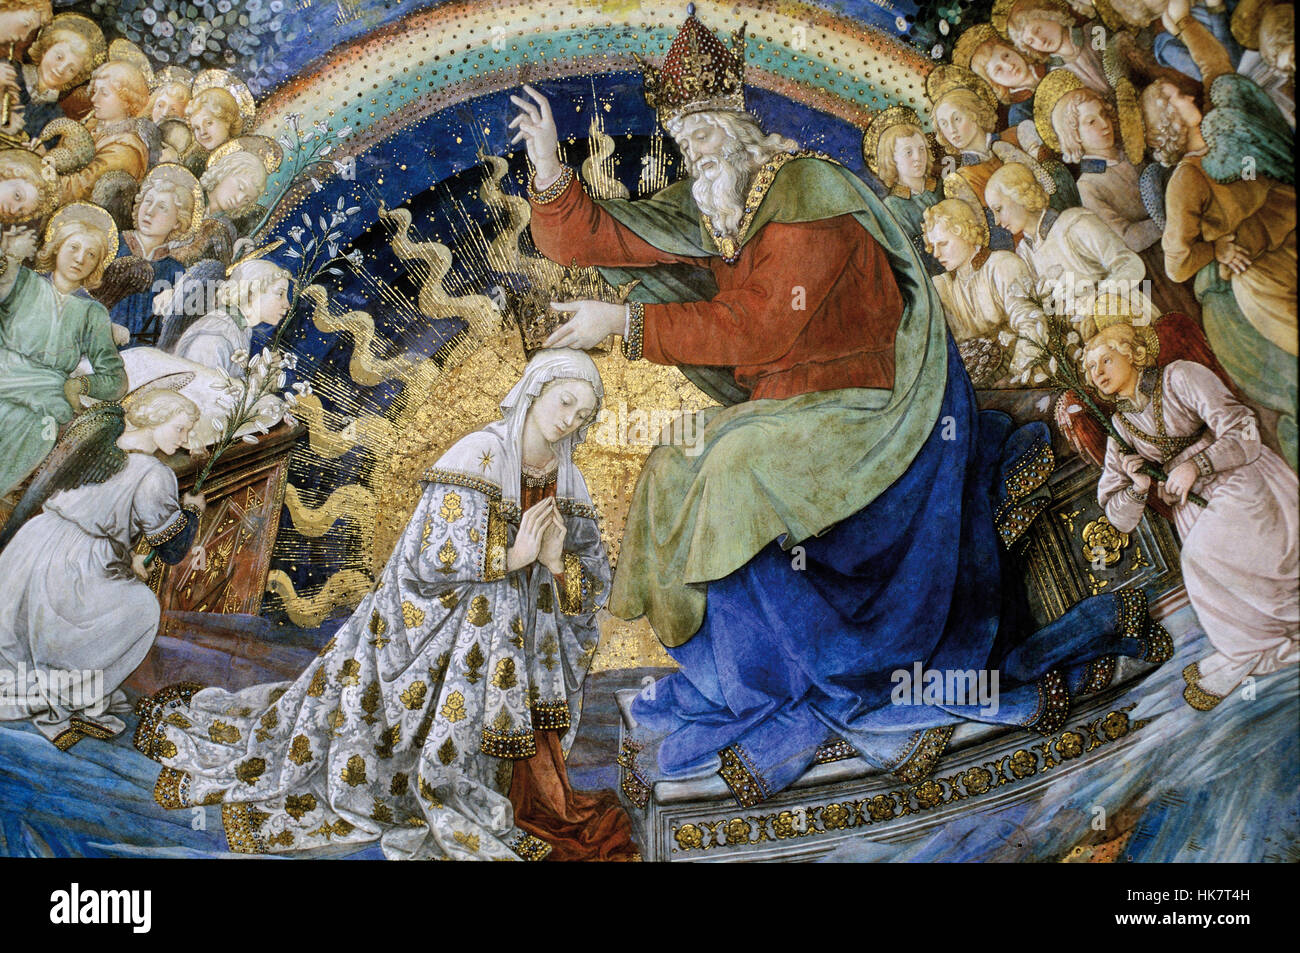 Italy, Umbria, Perugia, Province Spoleto, Cathedral, Virgin Histories Of Filippo Lippi - Stock Image